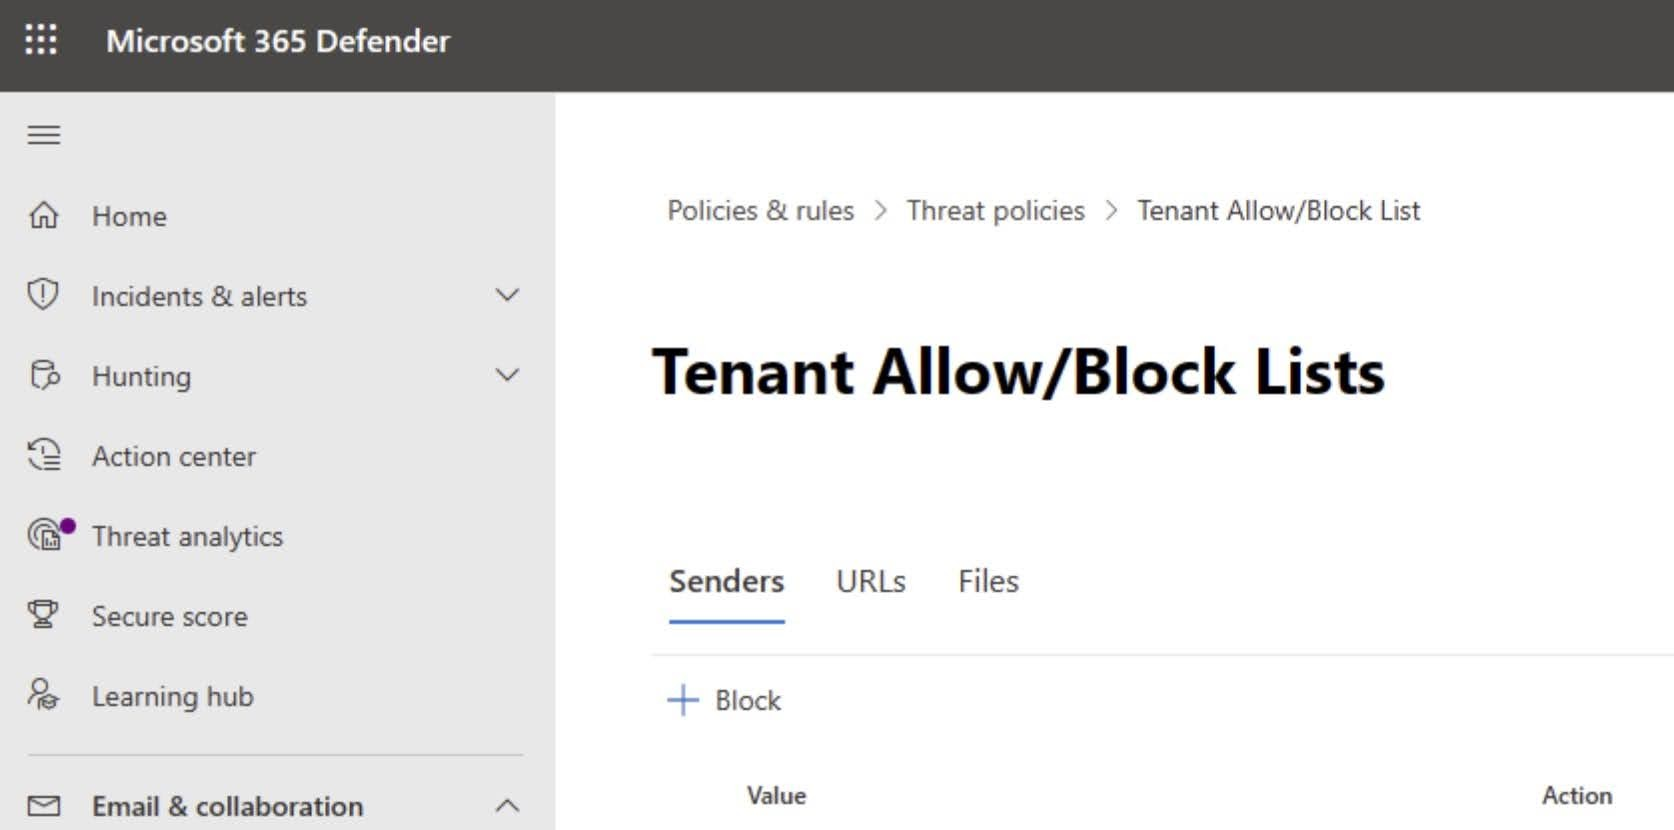 MC267137: Microsoft Defender for Office 365: Creating allow URLs and Files in the Tenant Allow/Block List (TABL)